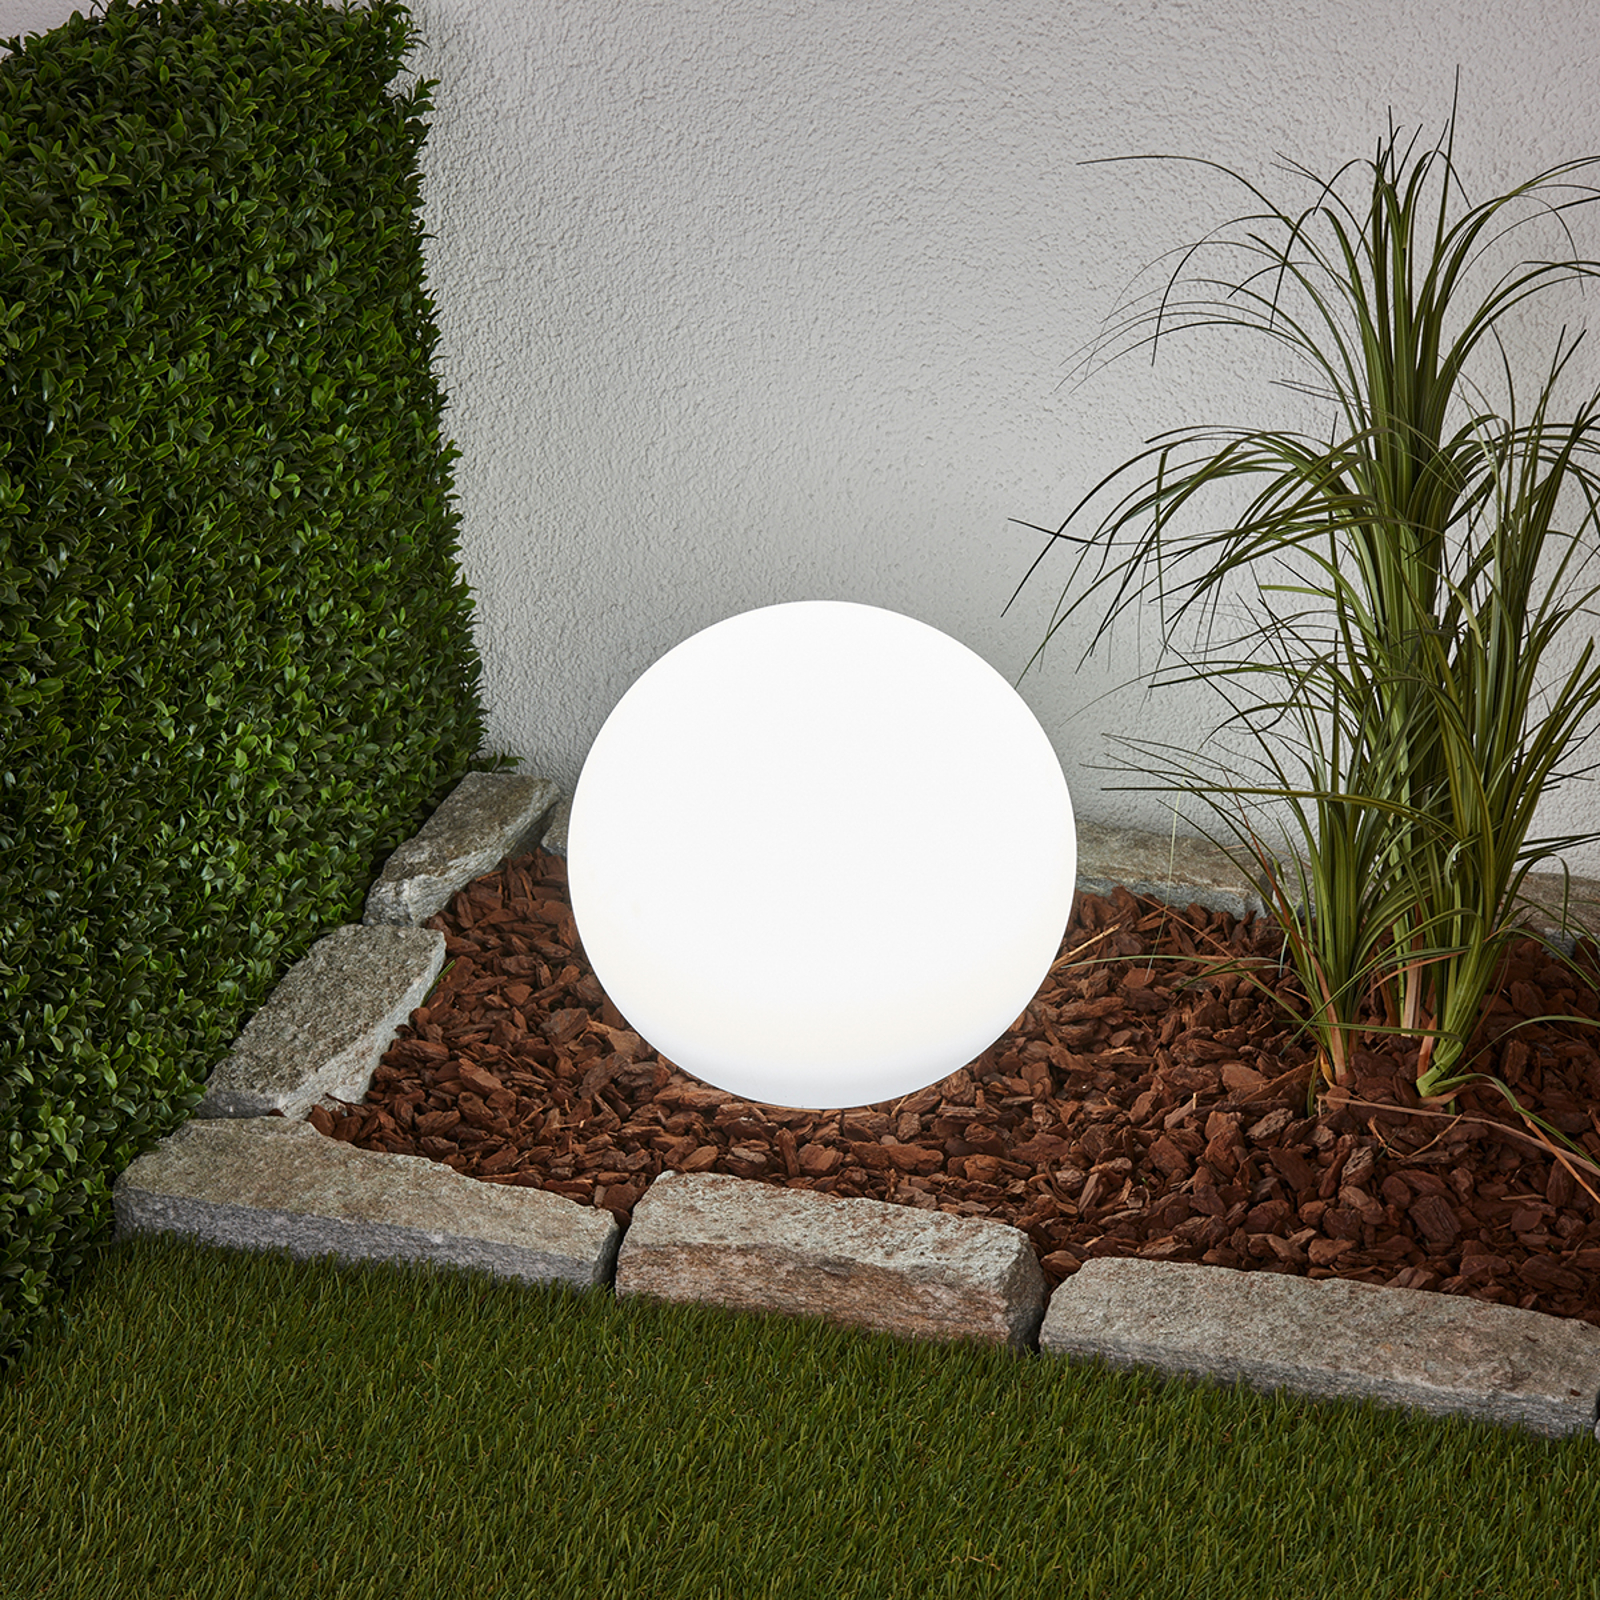 Dekorative LED-Solarlampe Lago in Kugelform